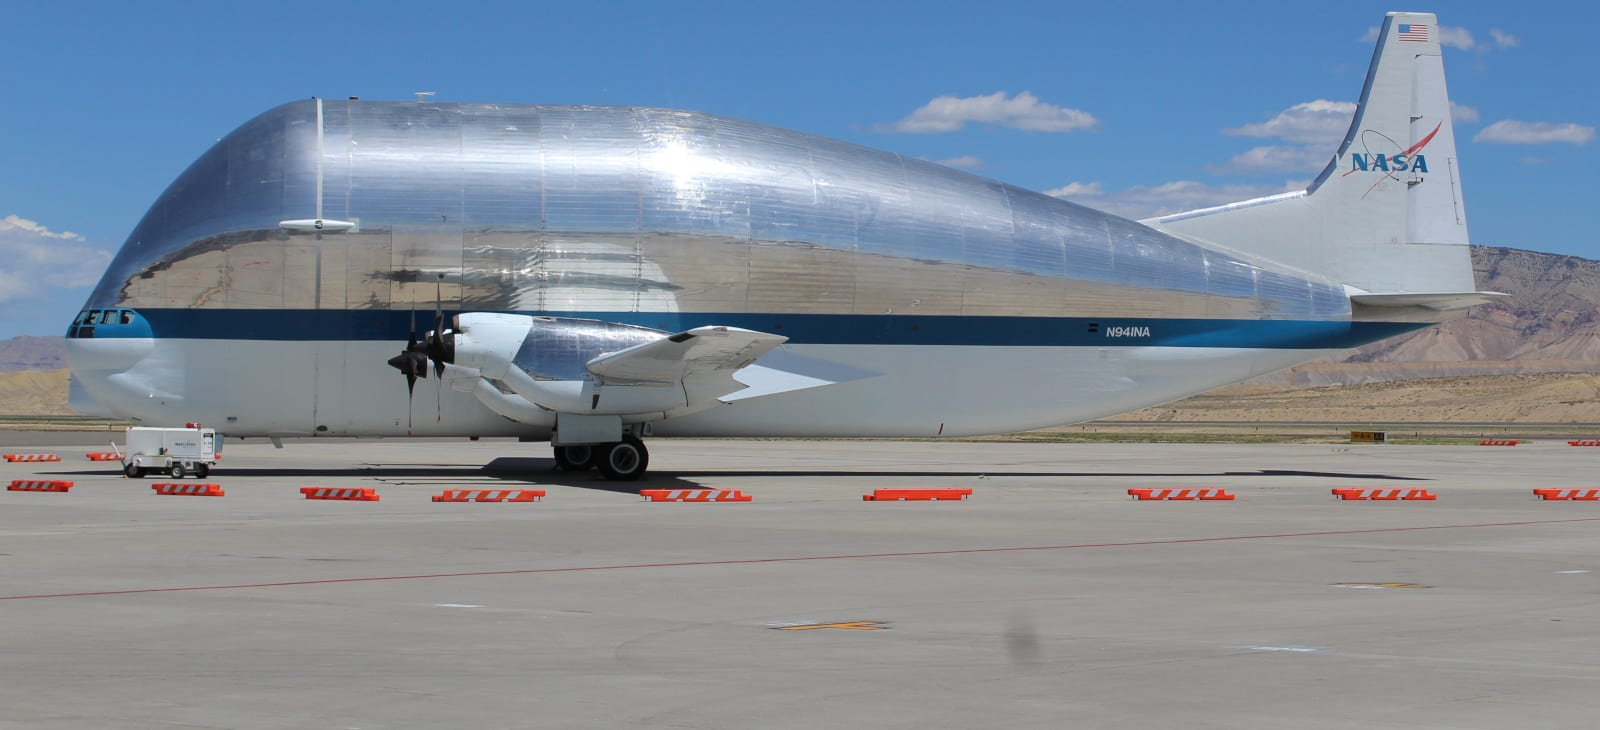 Grand Junction Regional Airport Nasa Plane Super Guppy Mission